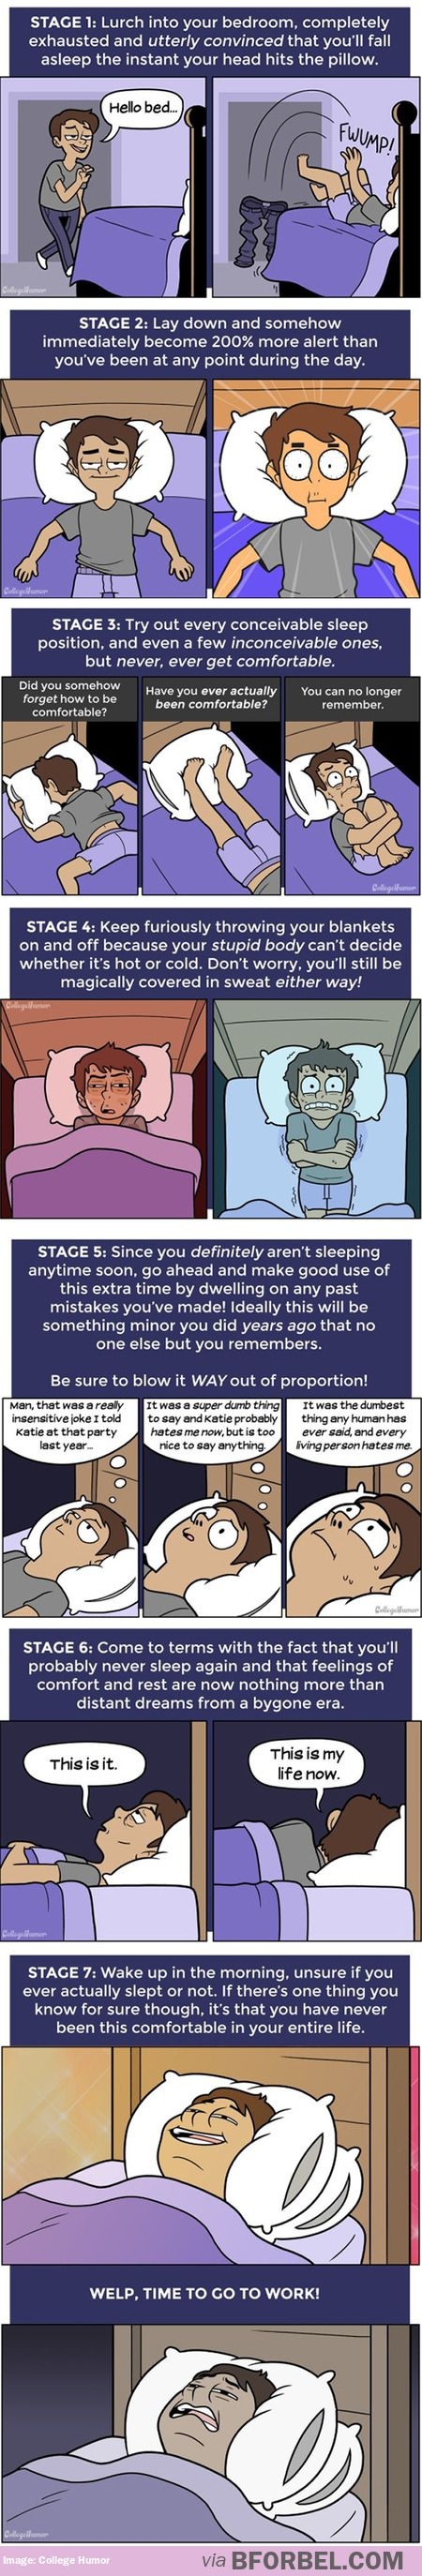 I cannot tell you how true this is. Especially the end where you're finally comfortable and tired but it's time to get up.